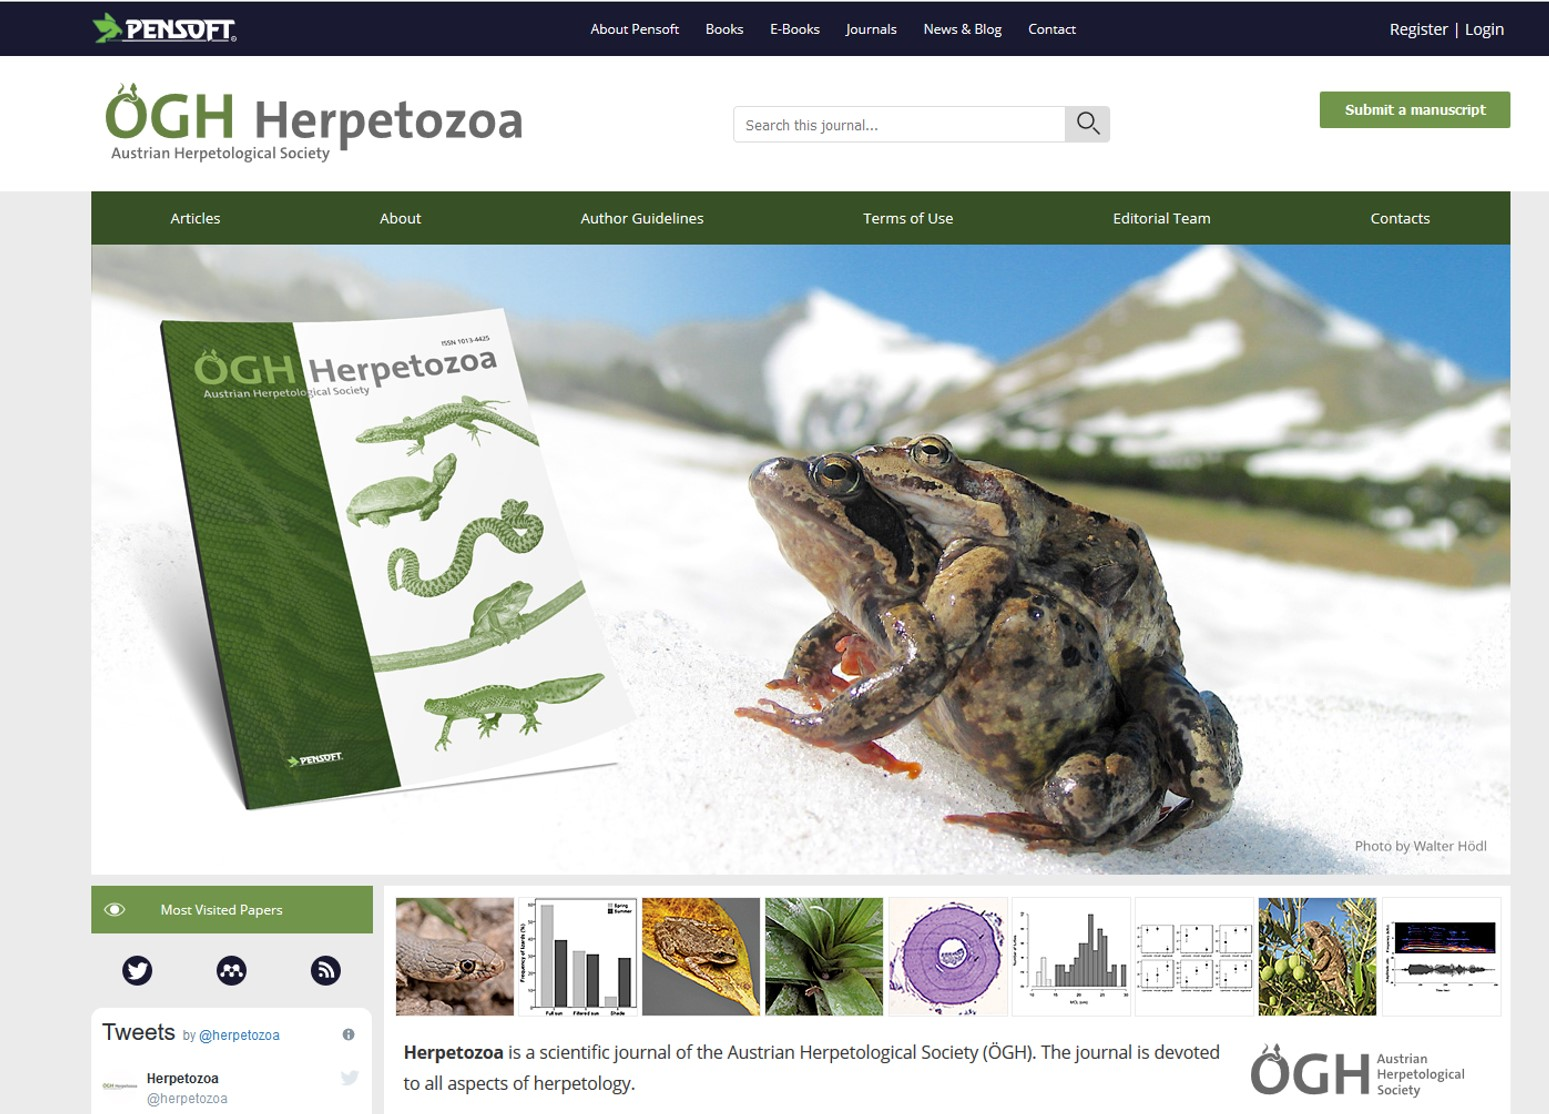 This is the homepage of the new Herpetozoa website, designed and provided by ARPHA.